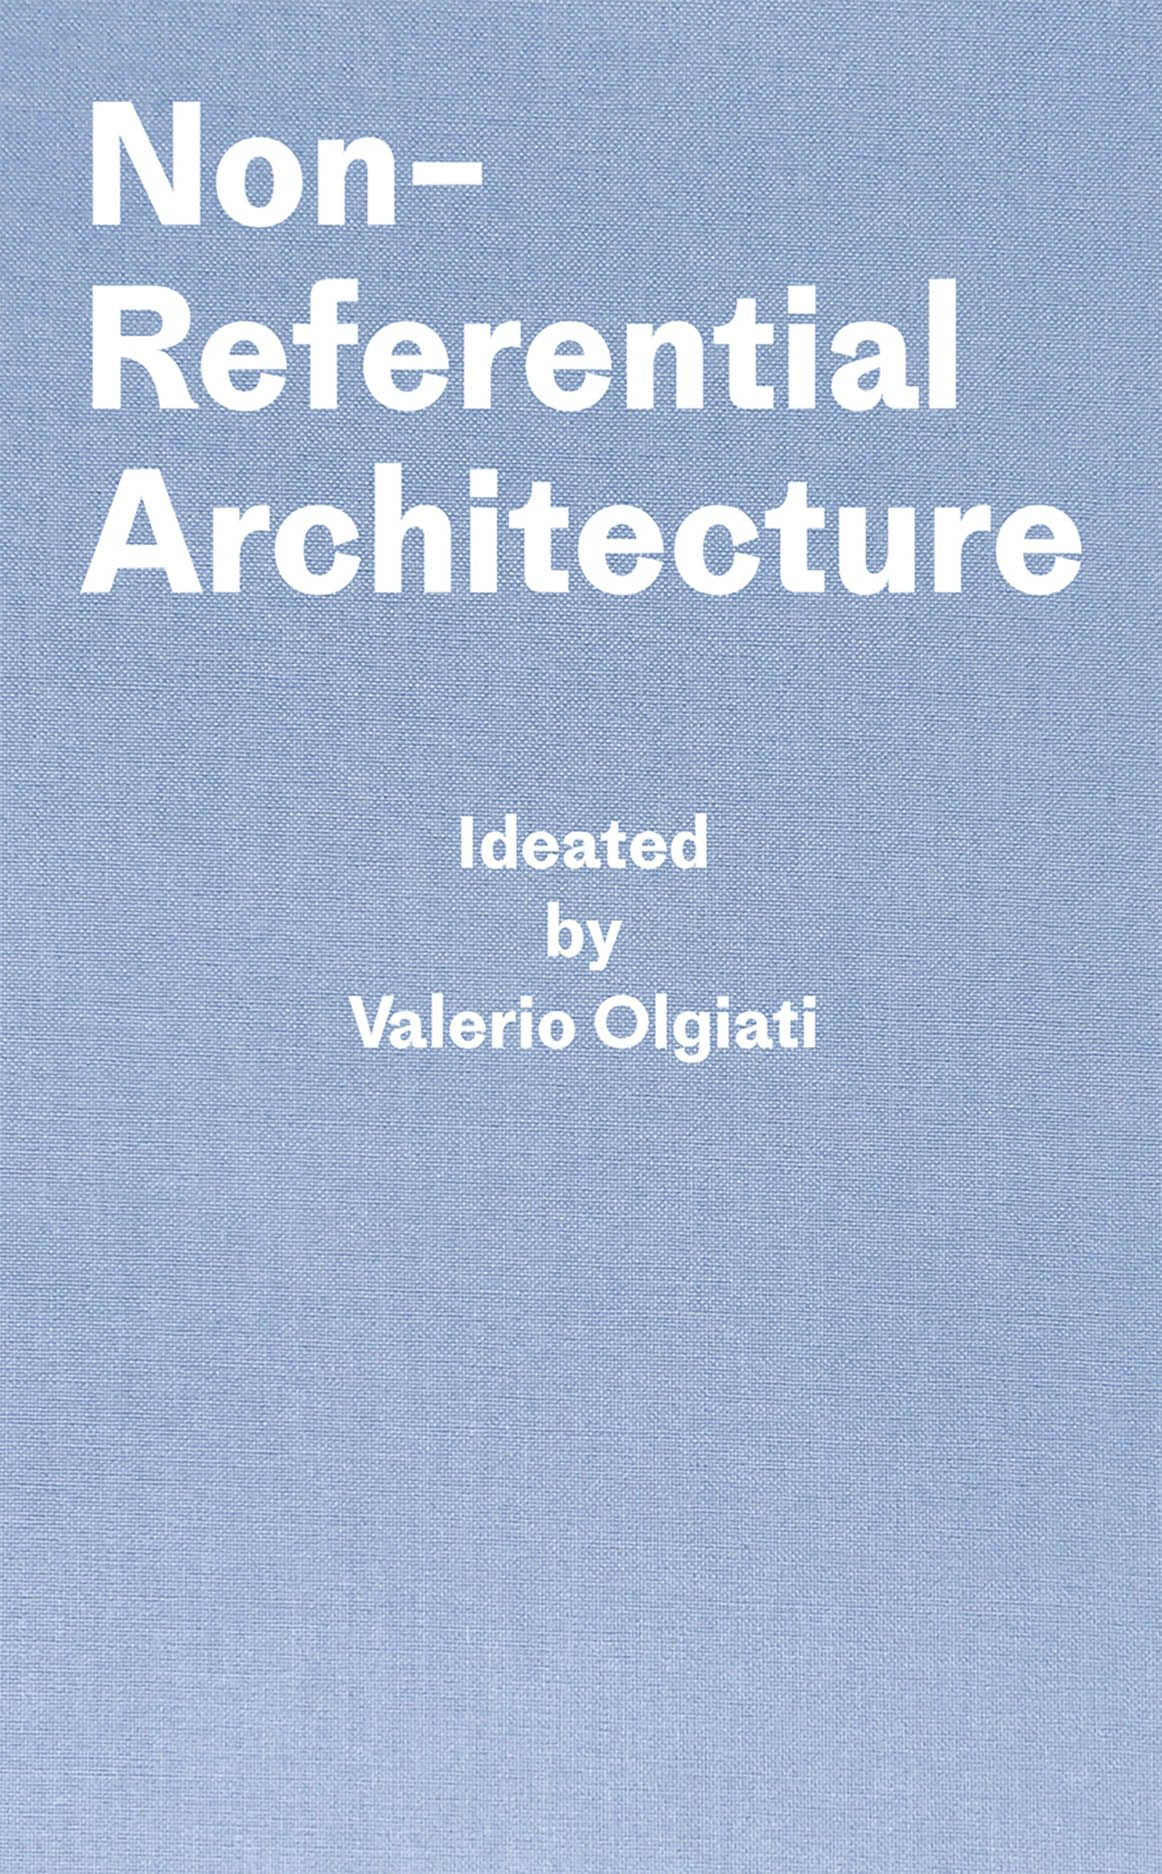 Non-Referential Architecture: Ideated by Valerio Olgiati and Written by Markus Breitschmid